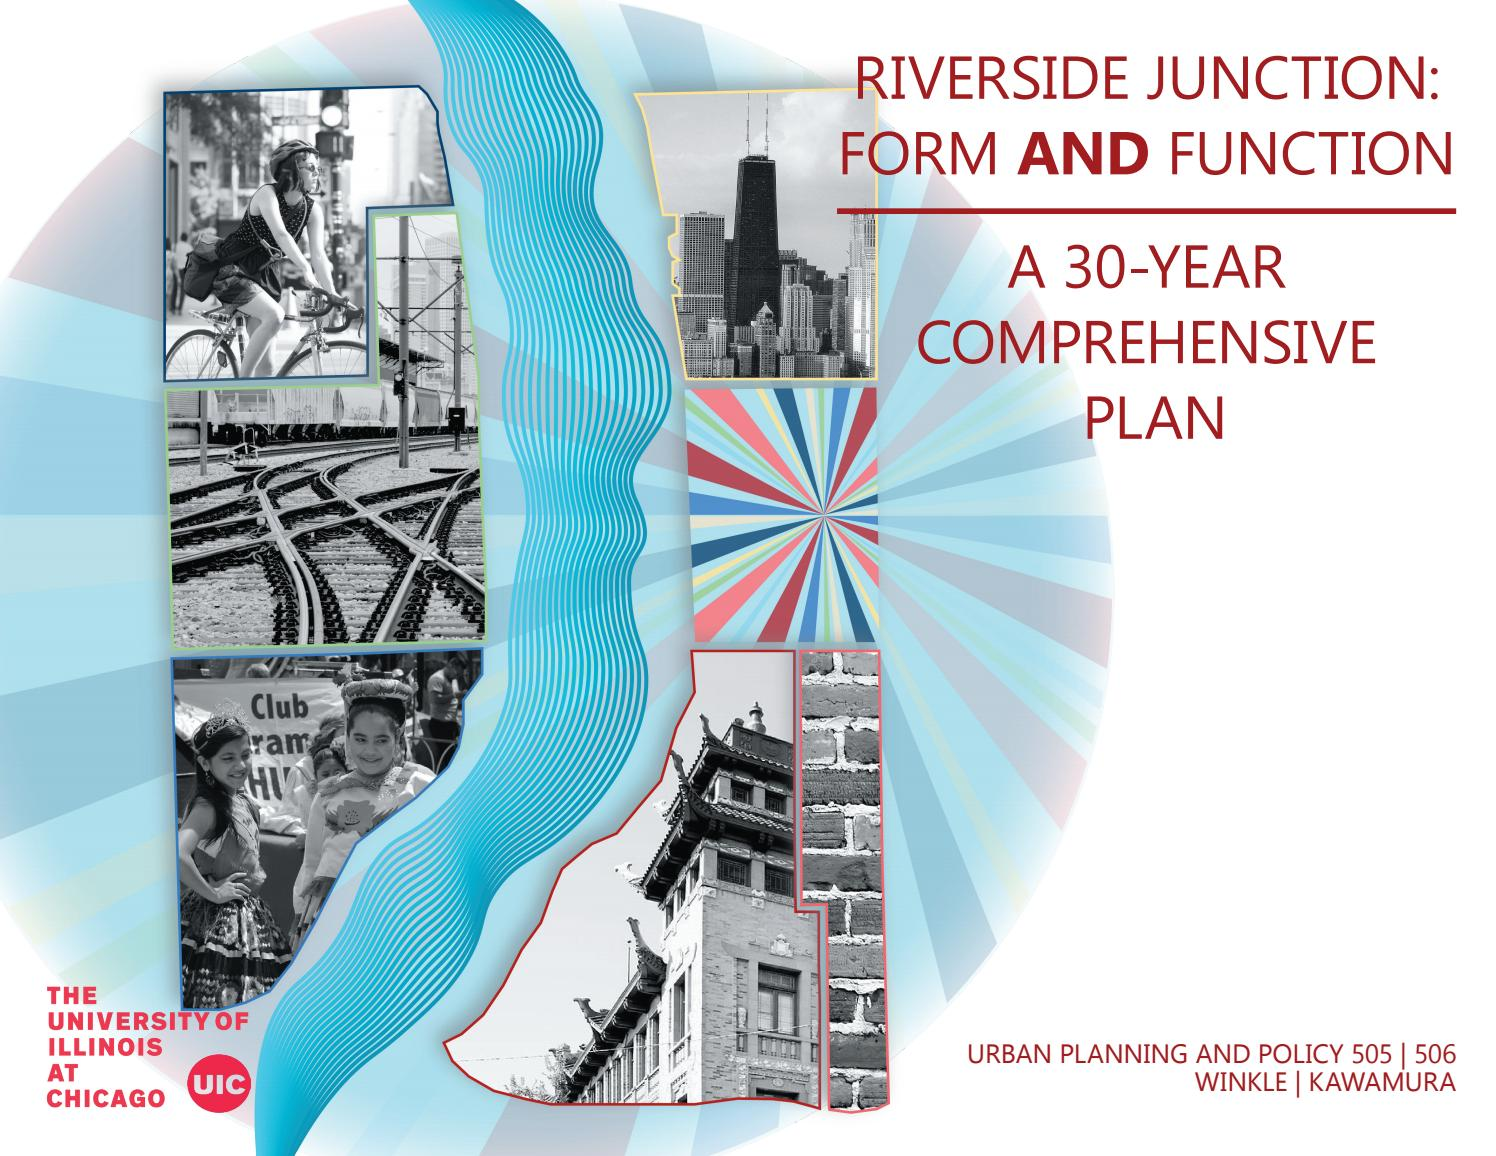 Riverside Junction: Form and Function by kaitlin cernak - issuu